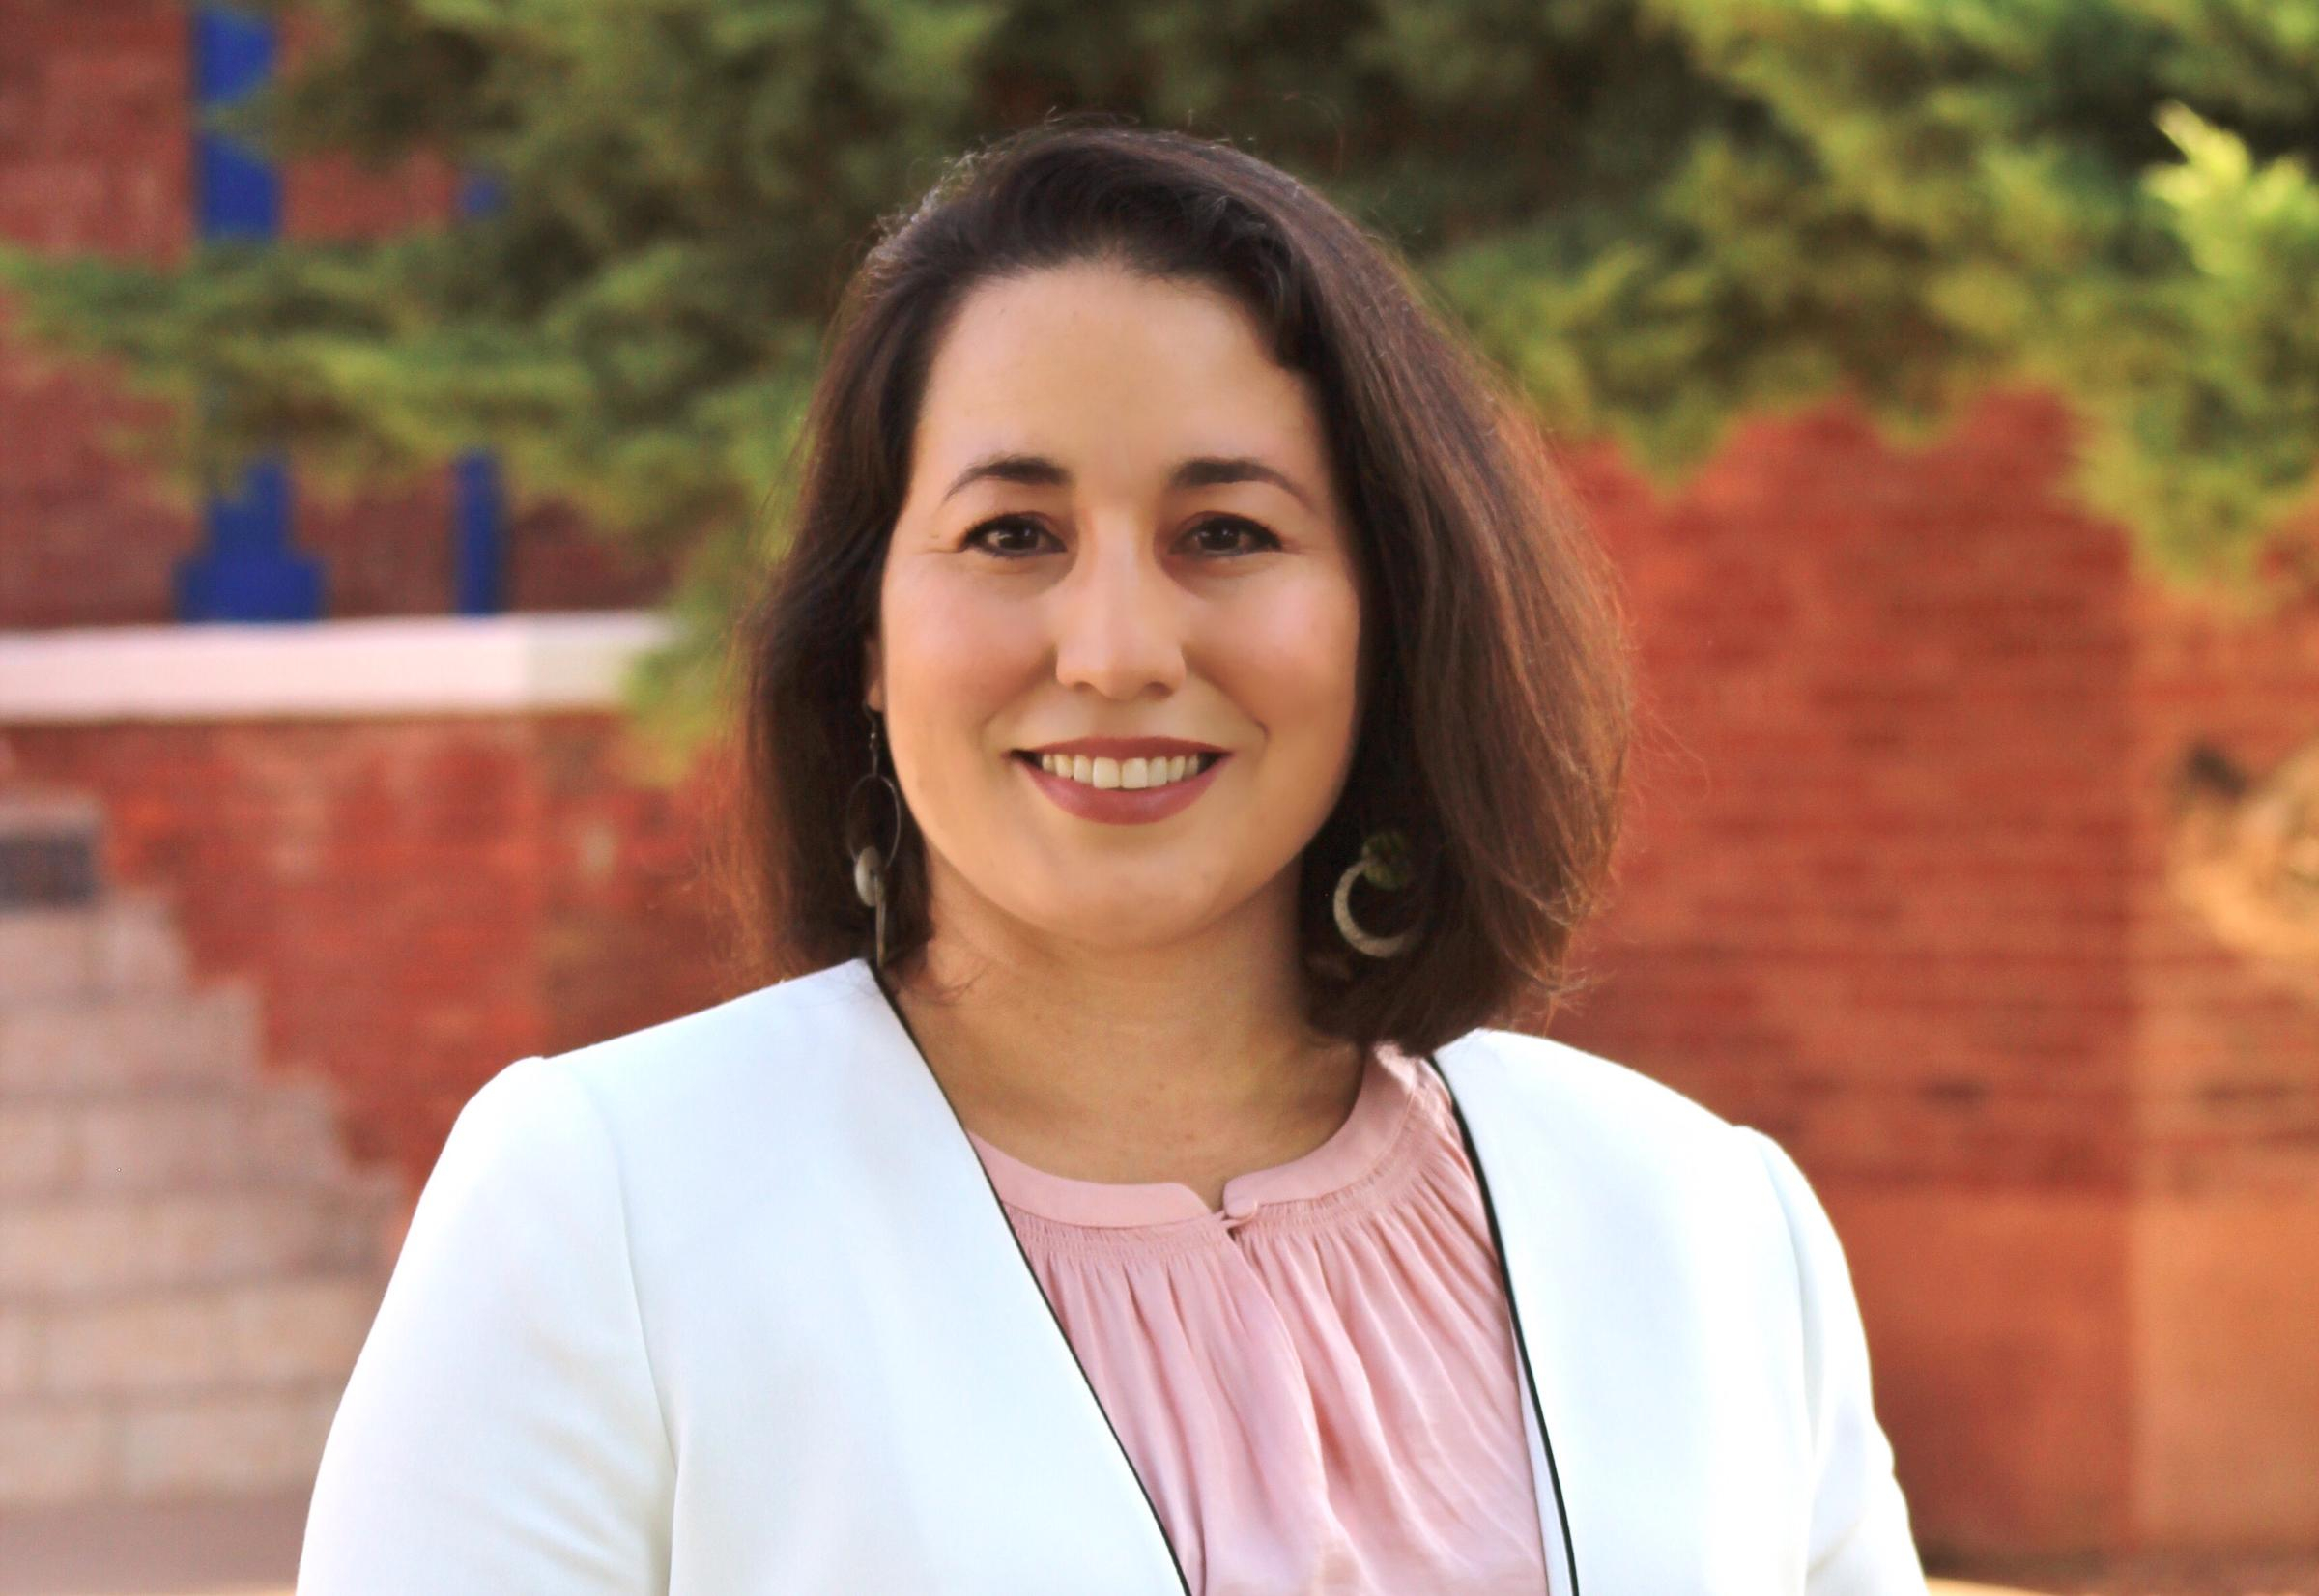 Candidate Announces For Las Cruces School Board, District With Regard To Las Cruces Public School Calendar